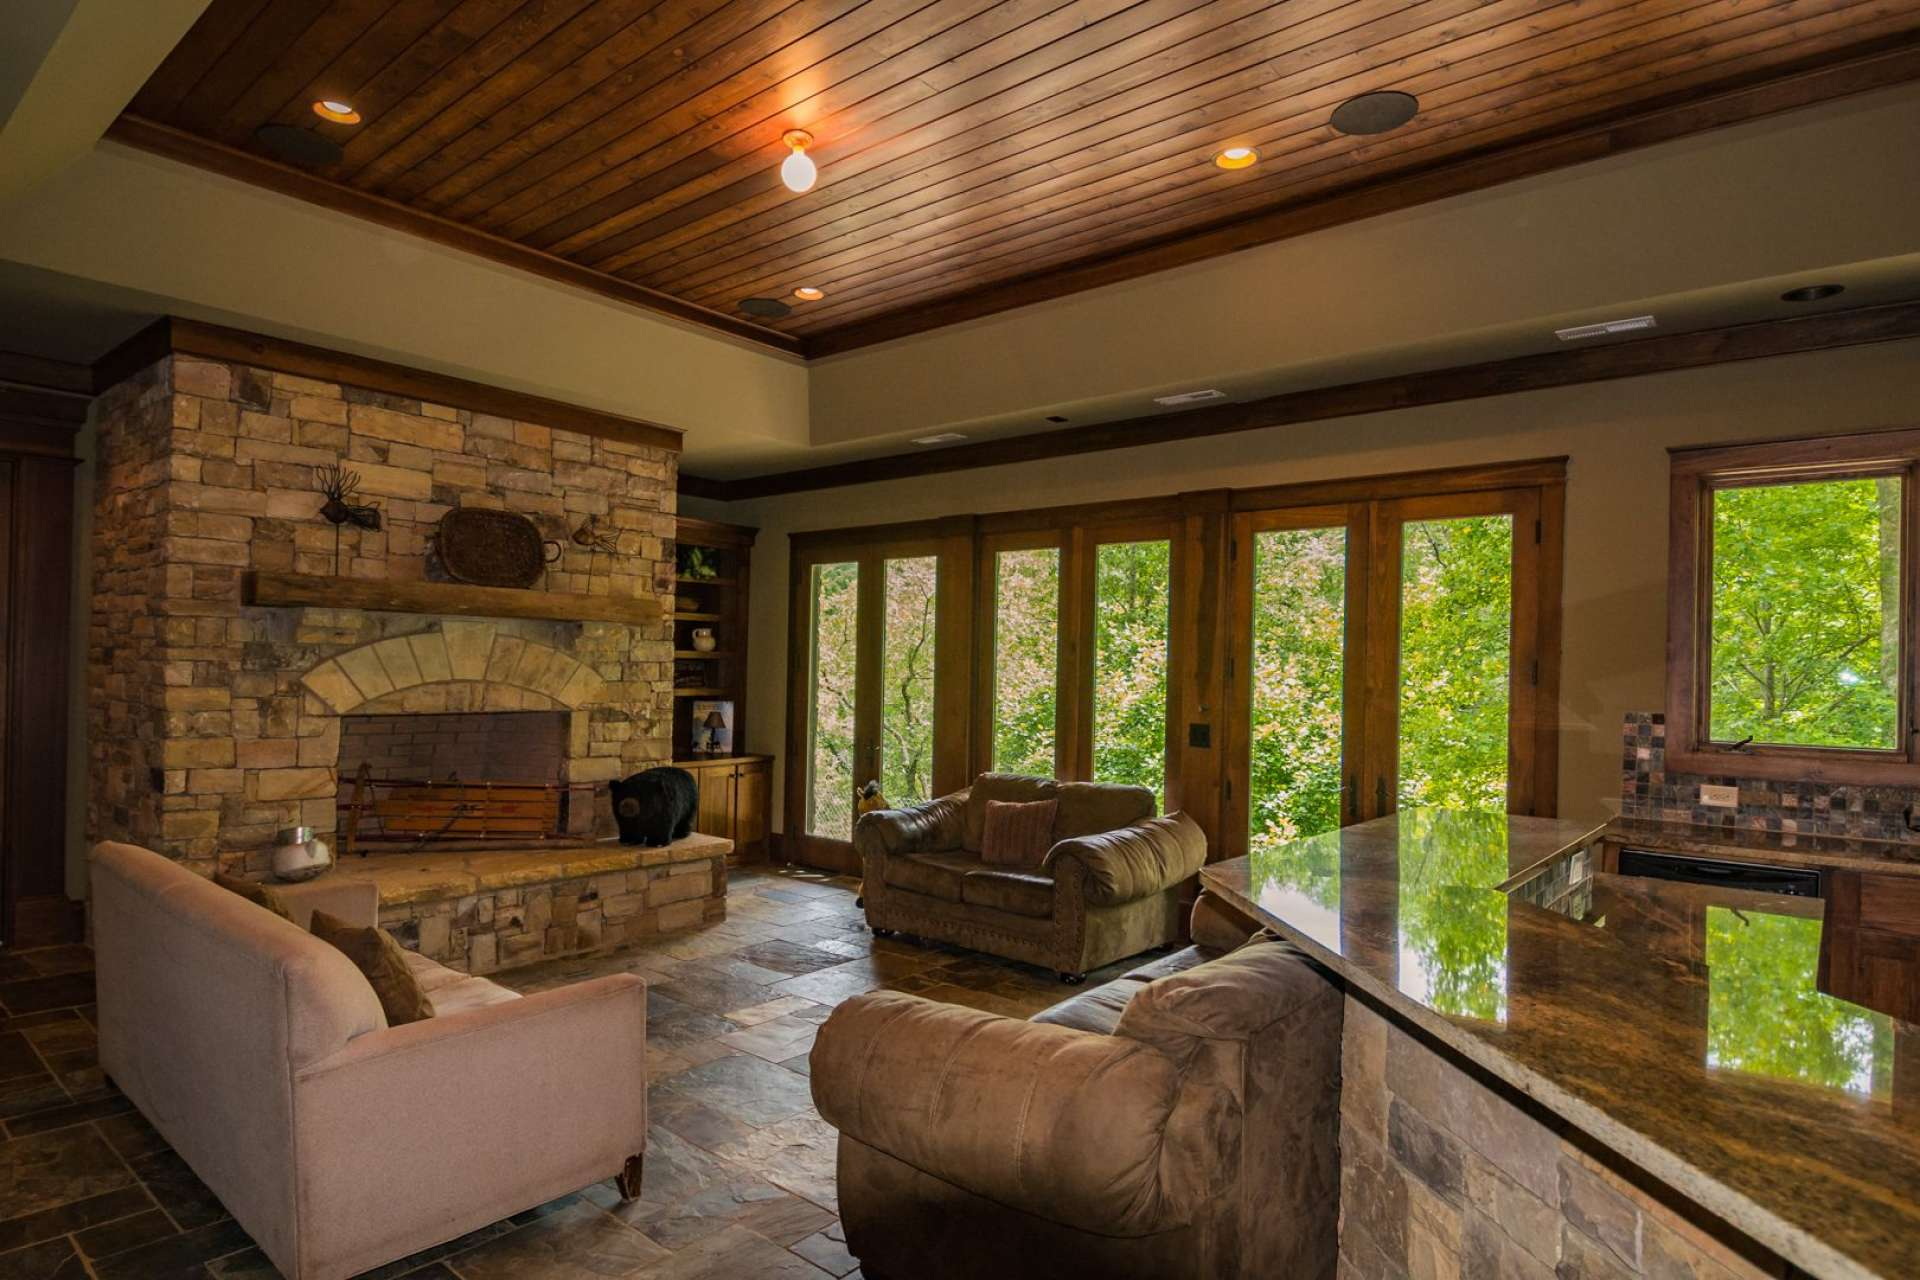 The great room is open and features high ceilings with exposed beams, tall windows to capture the outdoor scenery and natural light, beautiful wood floors, plus a stone fireplace with gas logs to warm up those cool winter evenings.